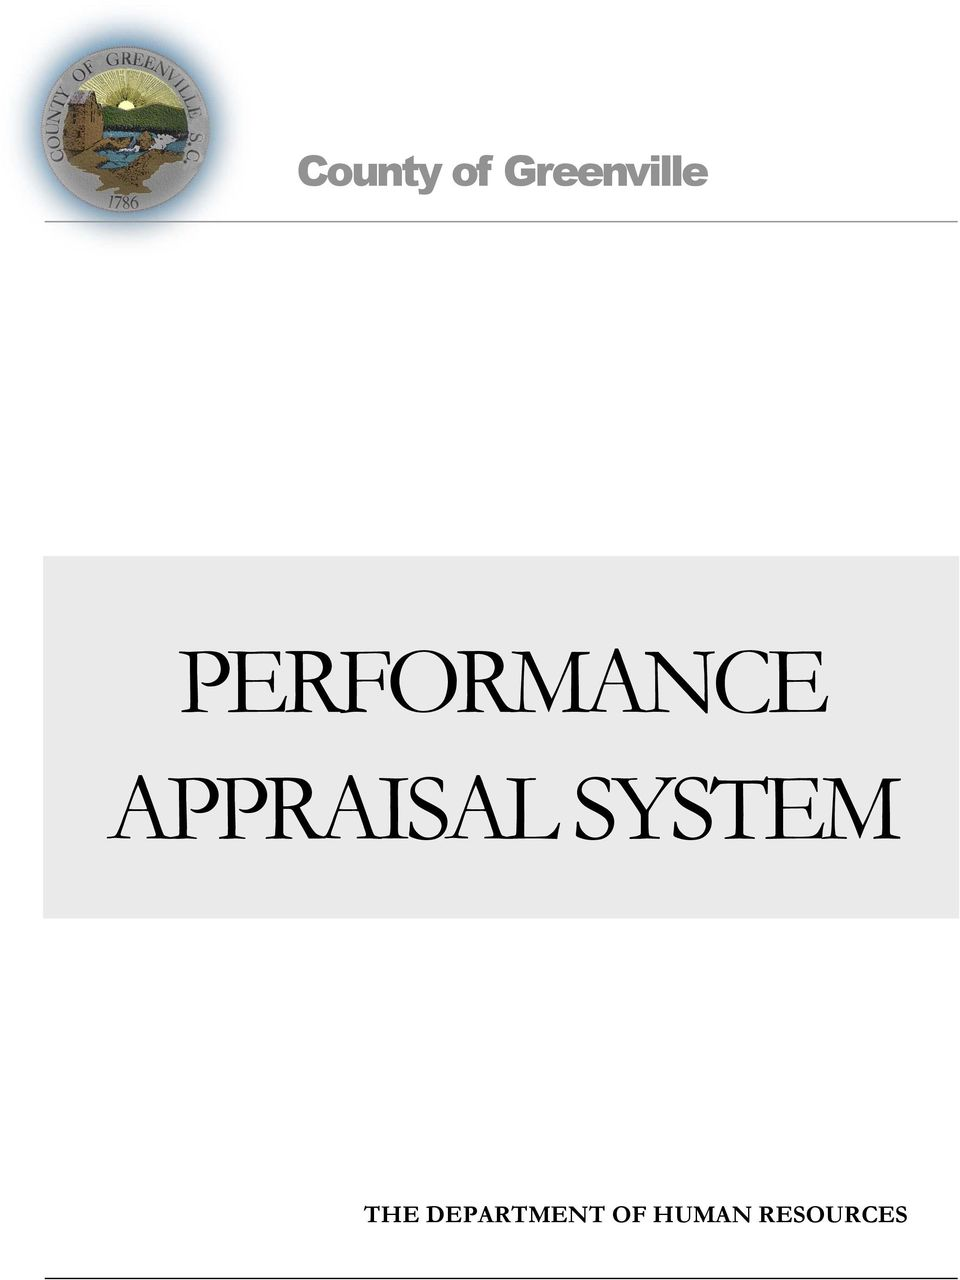 APPRAISAL SYSTEM THE